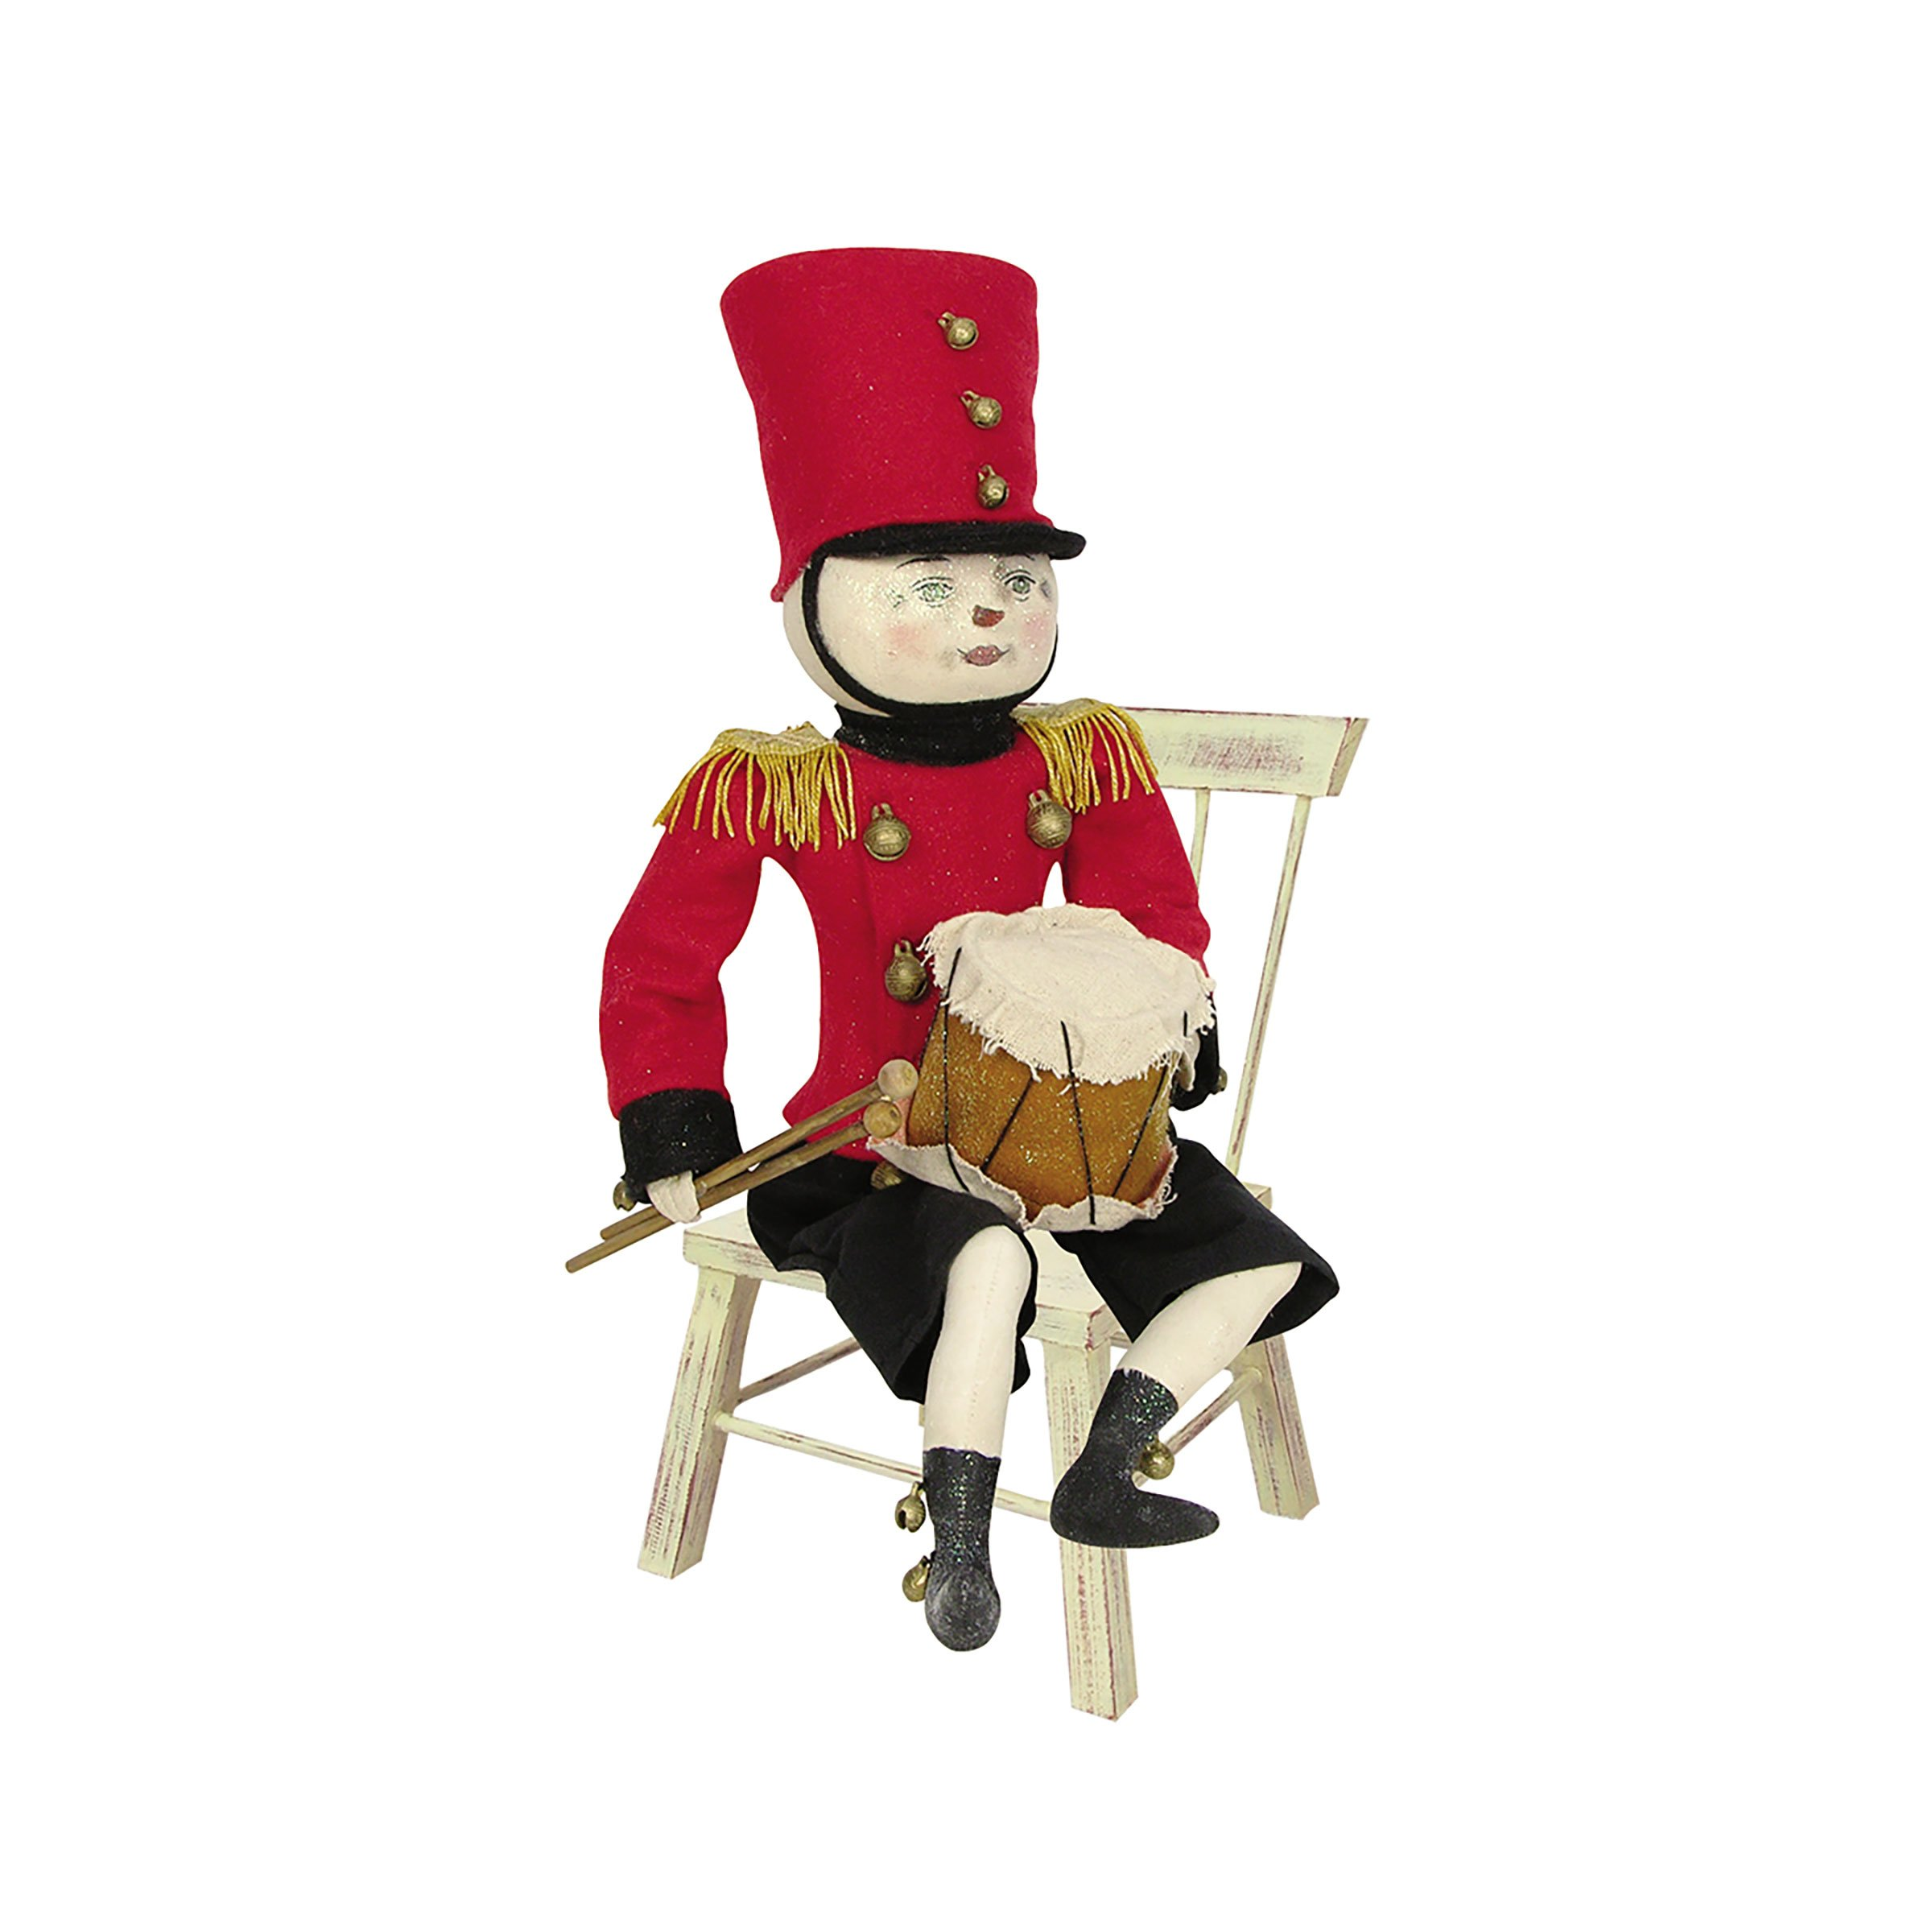 Joe Spencer ''Drummond'' Drummer Boy Figure Soft Sculpture Doll